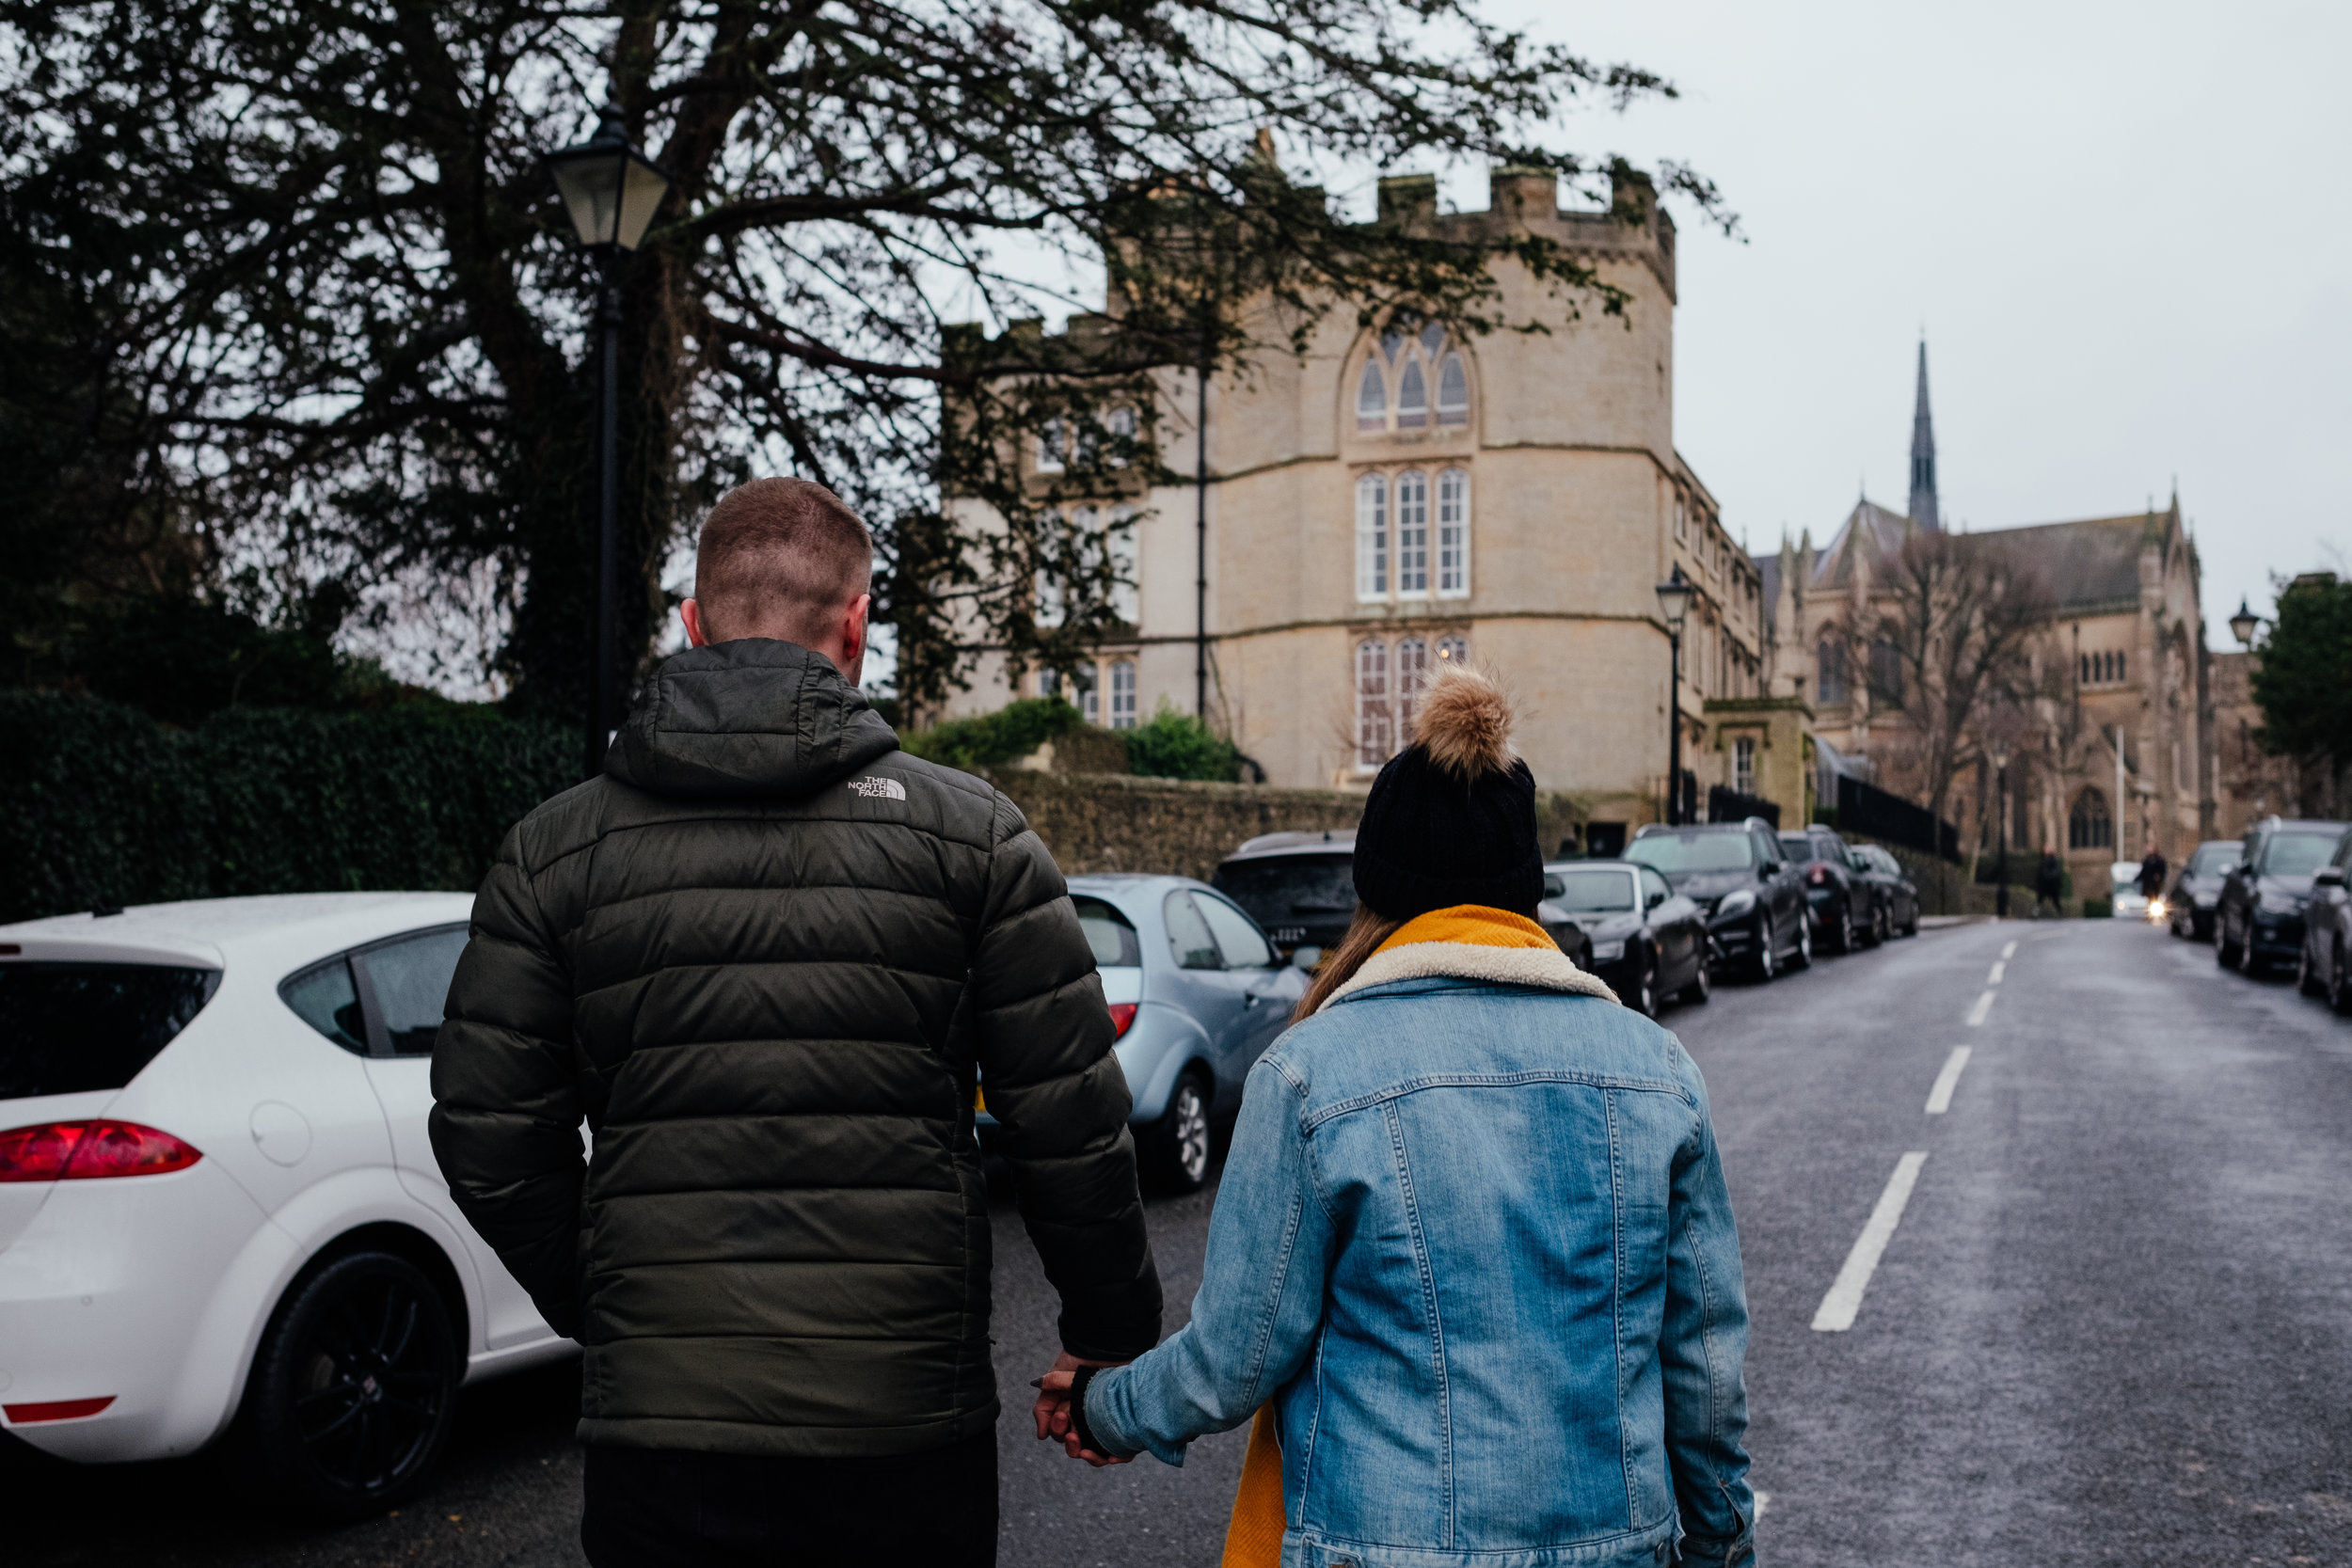 Winter engagement shoot in Arundel wearing The North Face